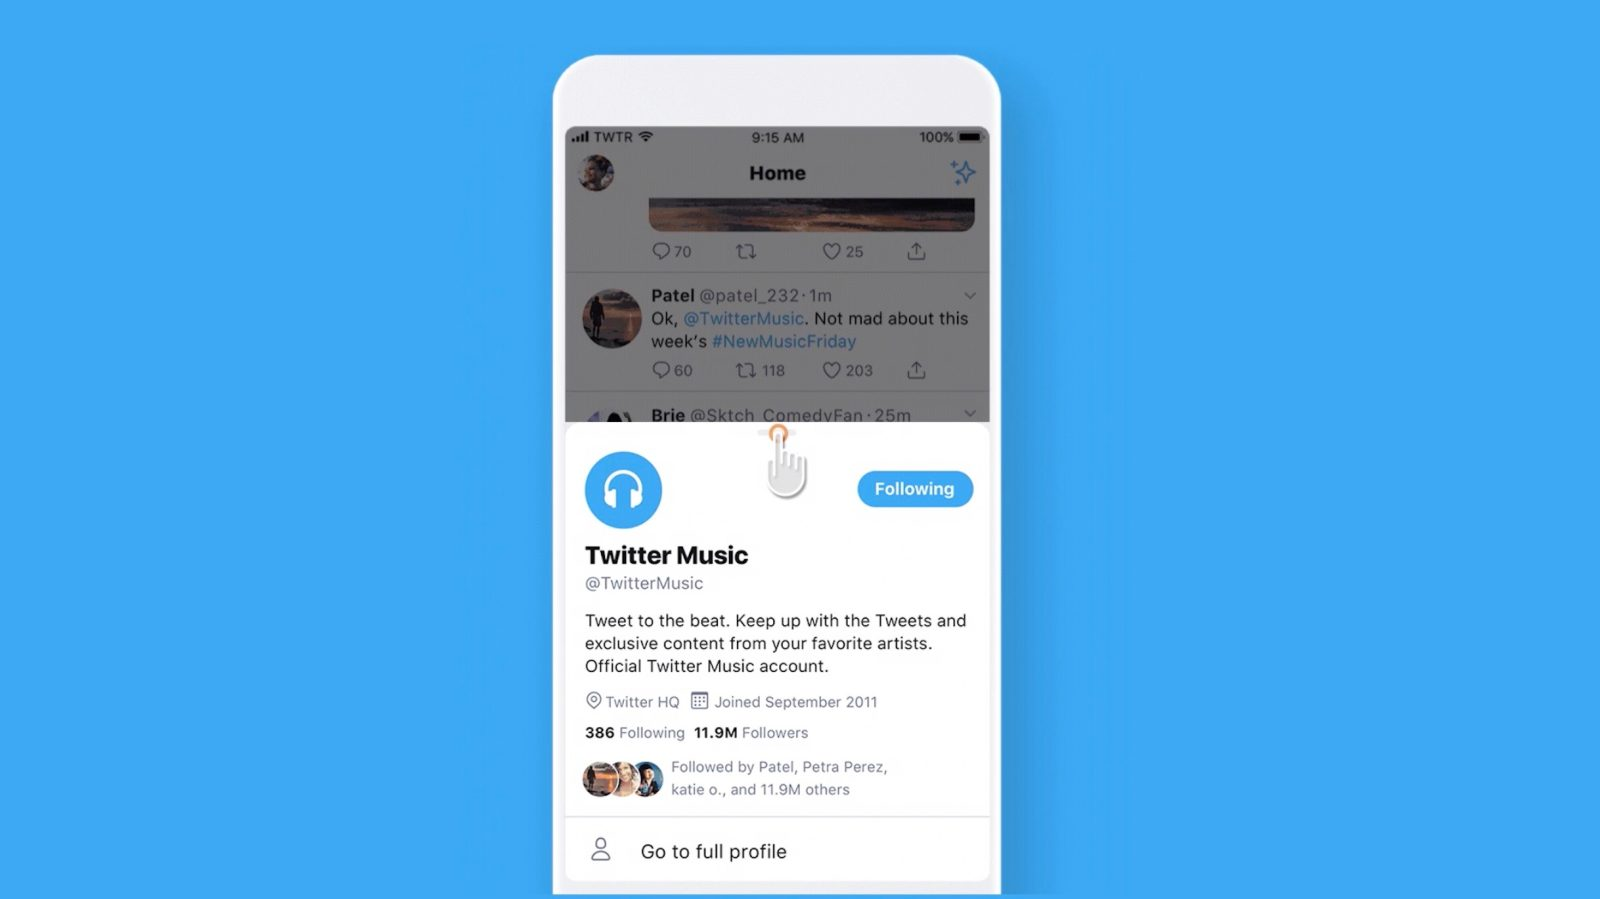 QnA VBage Twitter testing new pop-up design for quickly viewing profile details on iOS